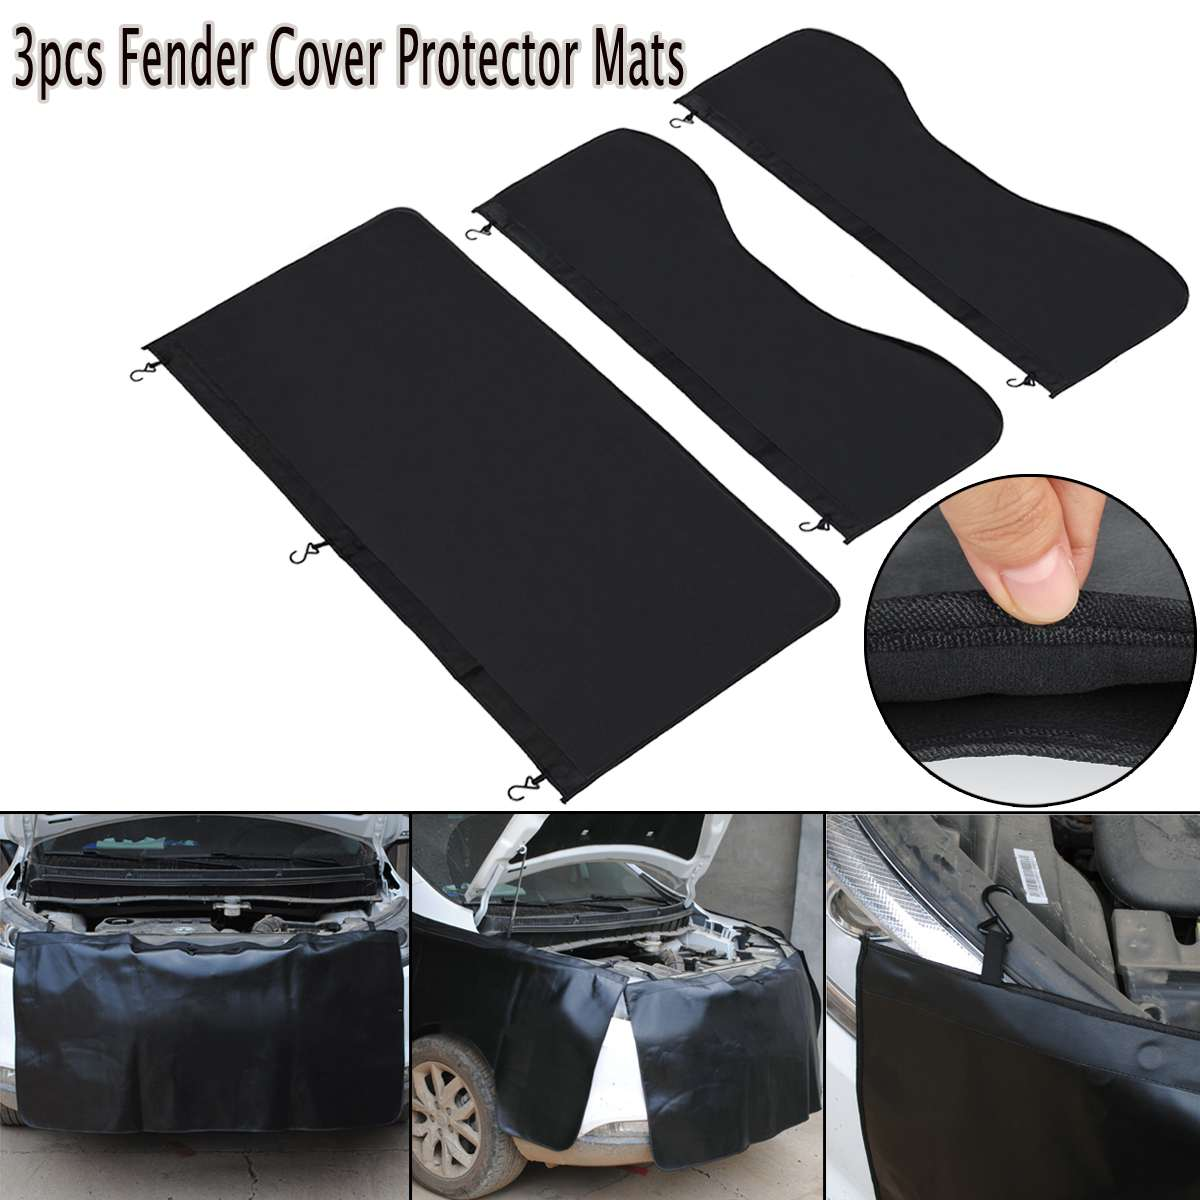 Protector Fender-Cover Work-Mat Mechanic Auto-Repairing-Pad Magnetic Universal Car